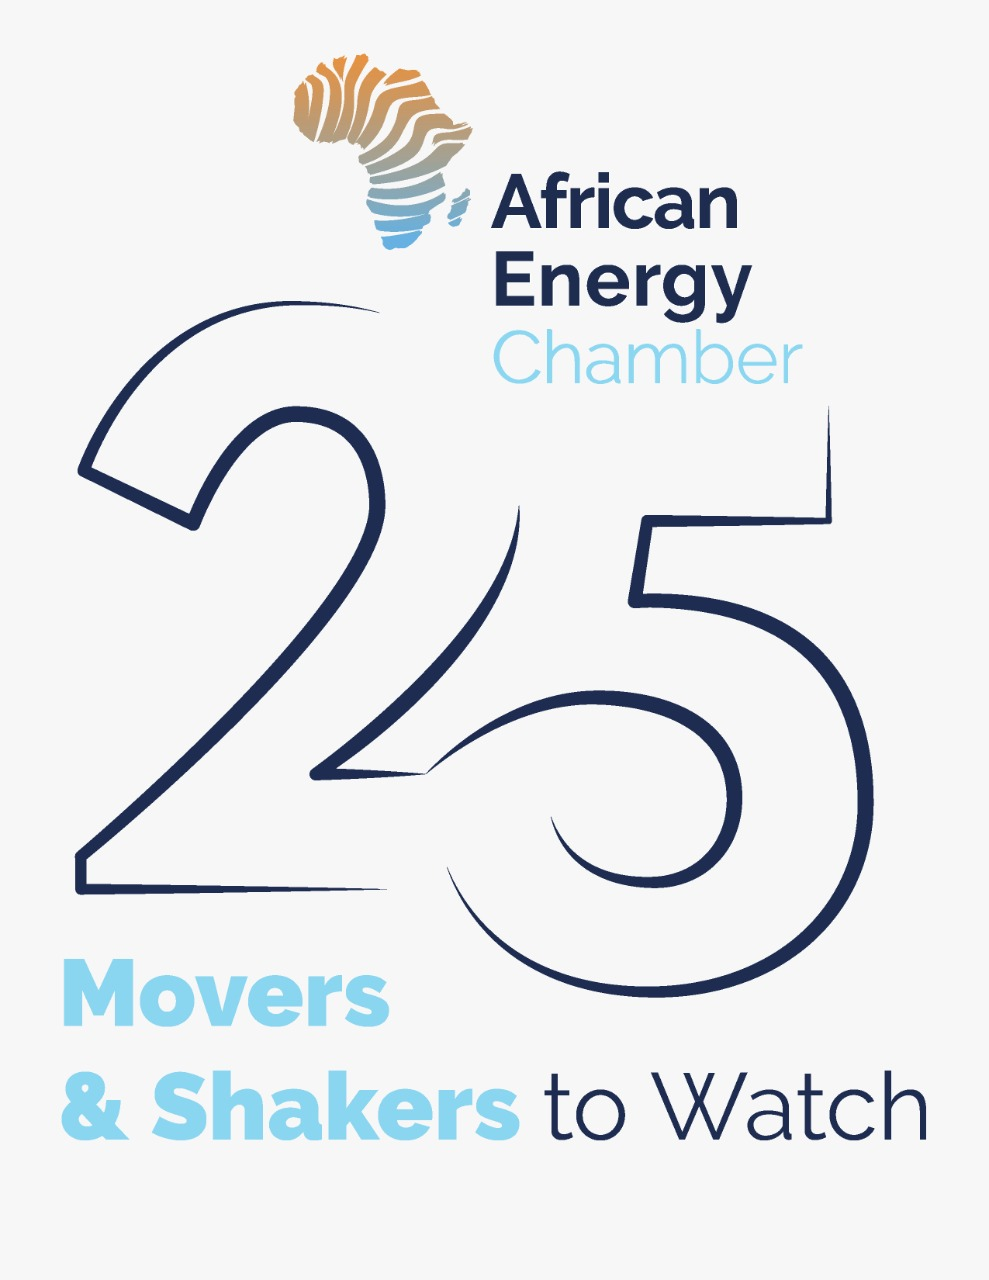 African Energy Chamber